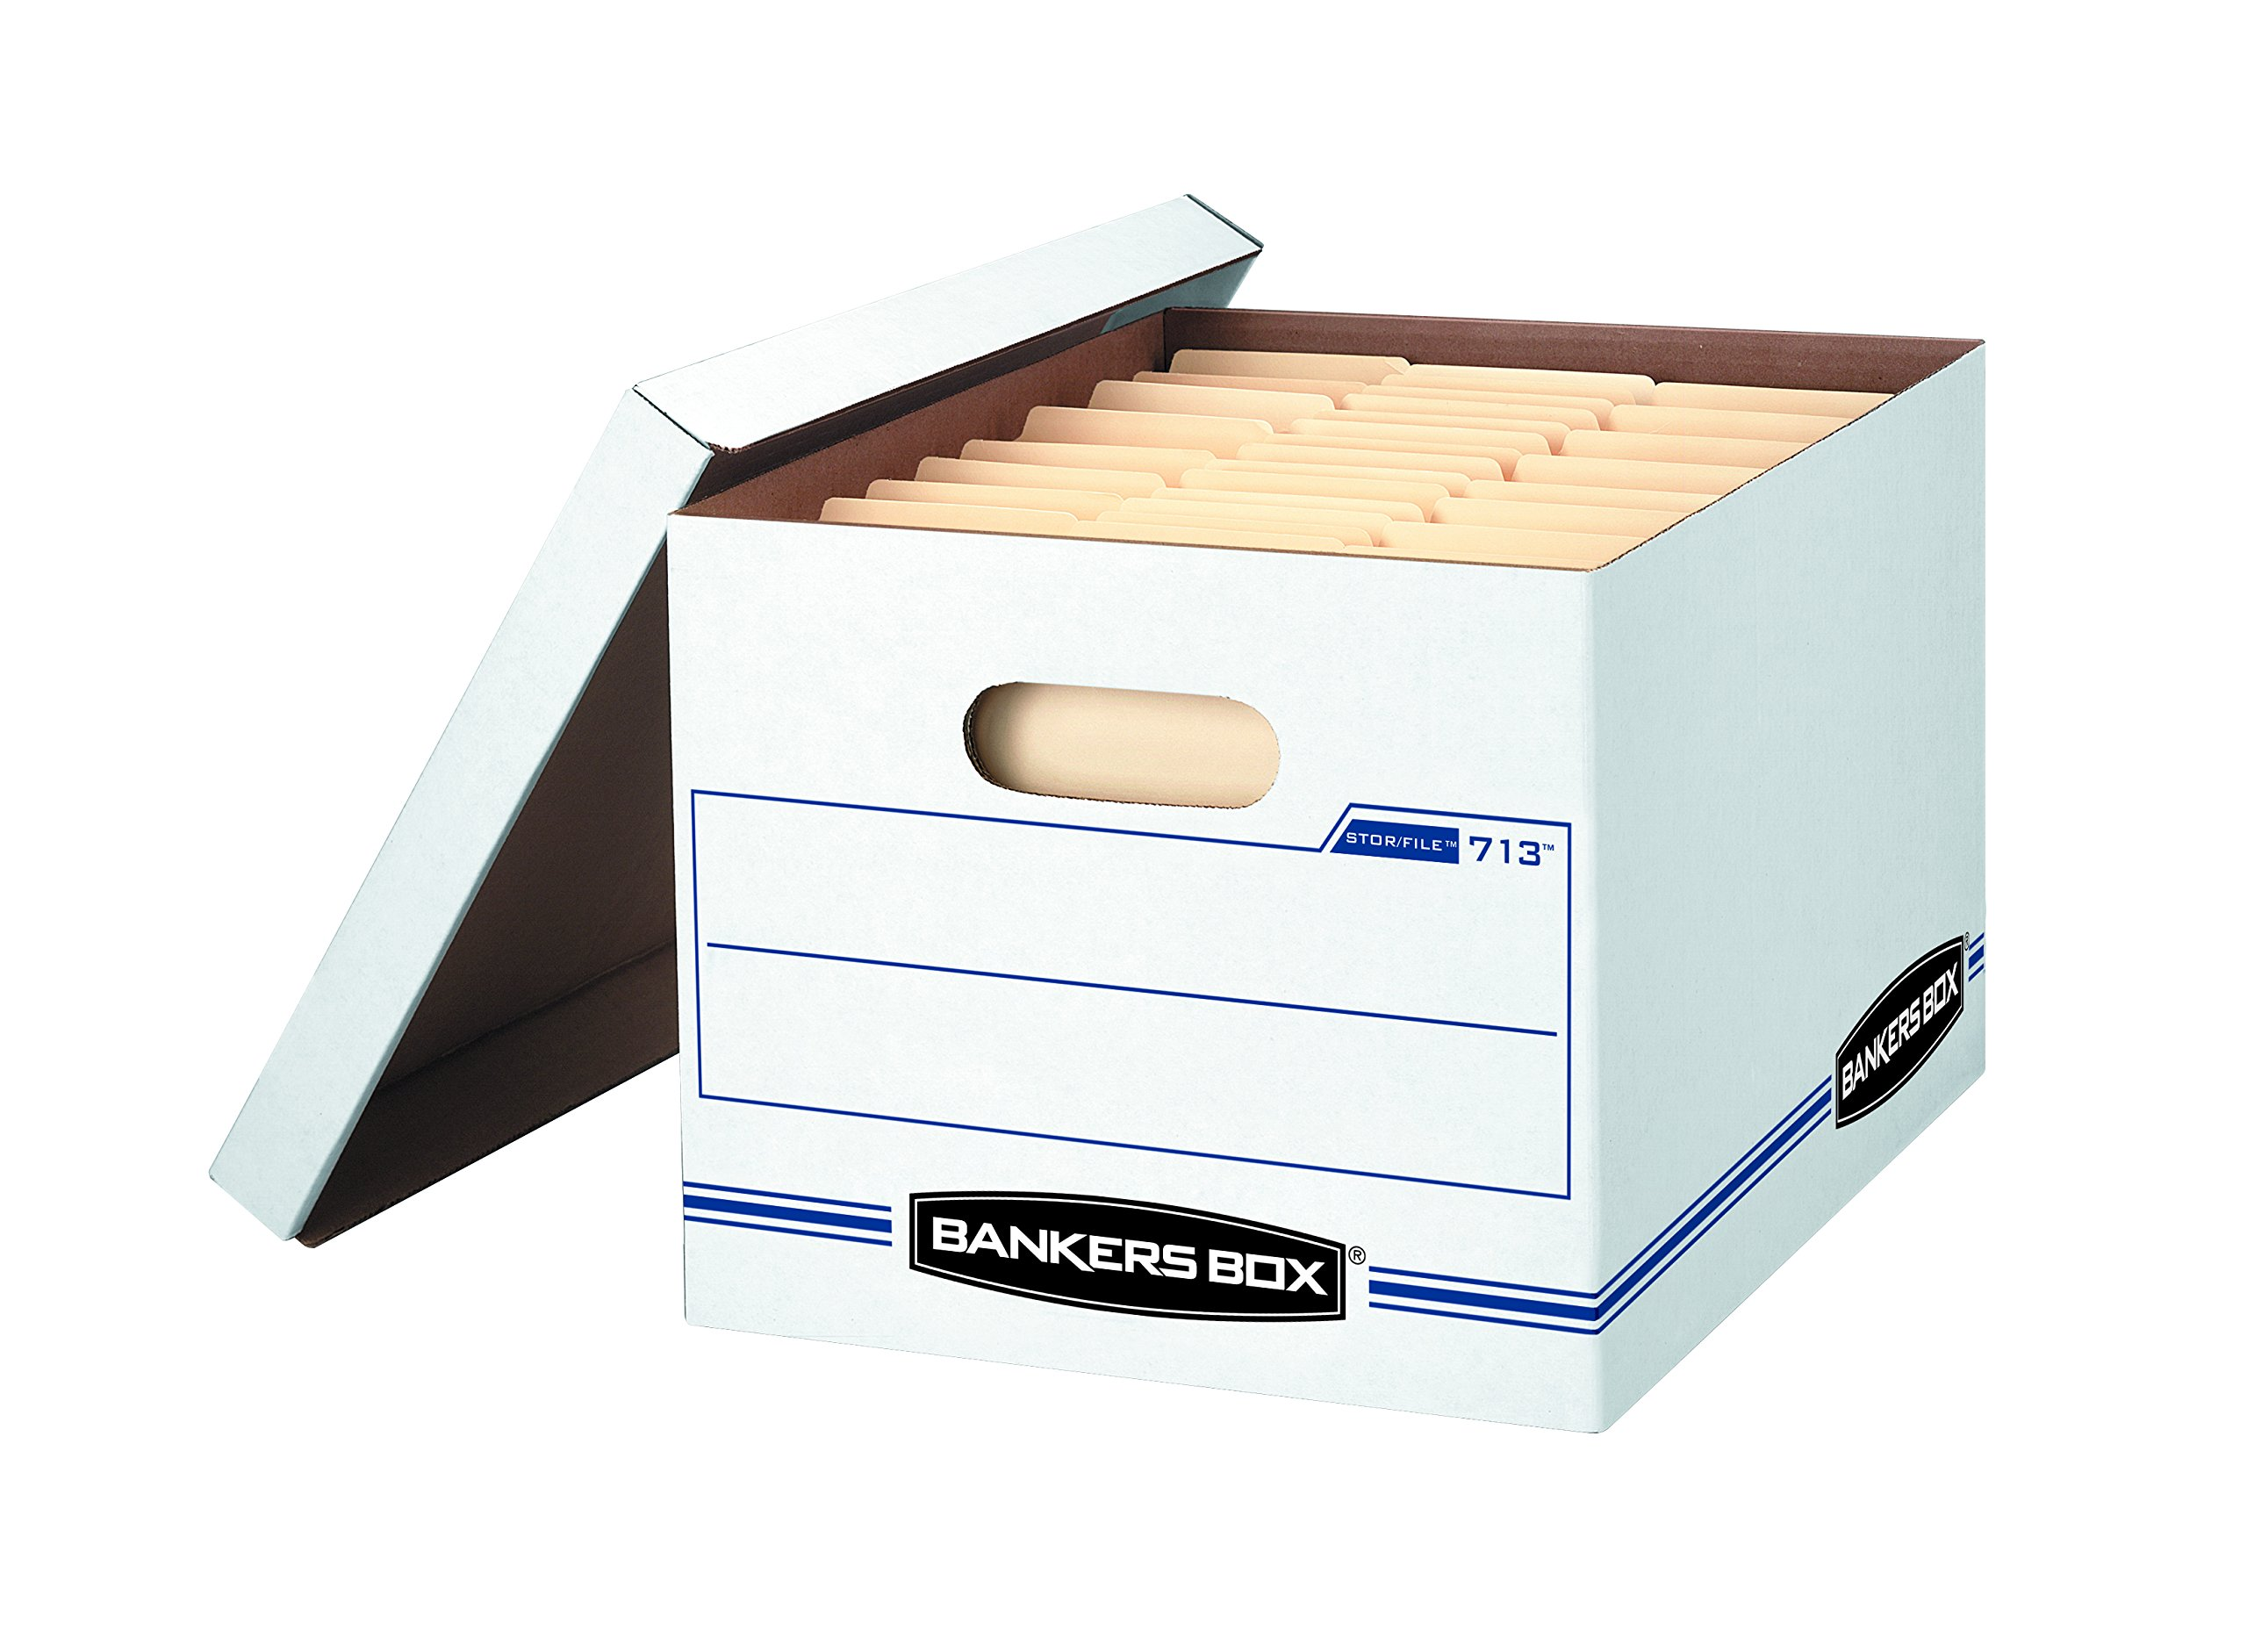 Bankers Box STOR/FILE Storage Boxes, Standard Set-Up, Lift-Off Lid, Letter/Legal, 6 Pack (0071303) by Bankers Box